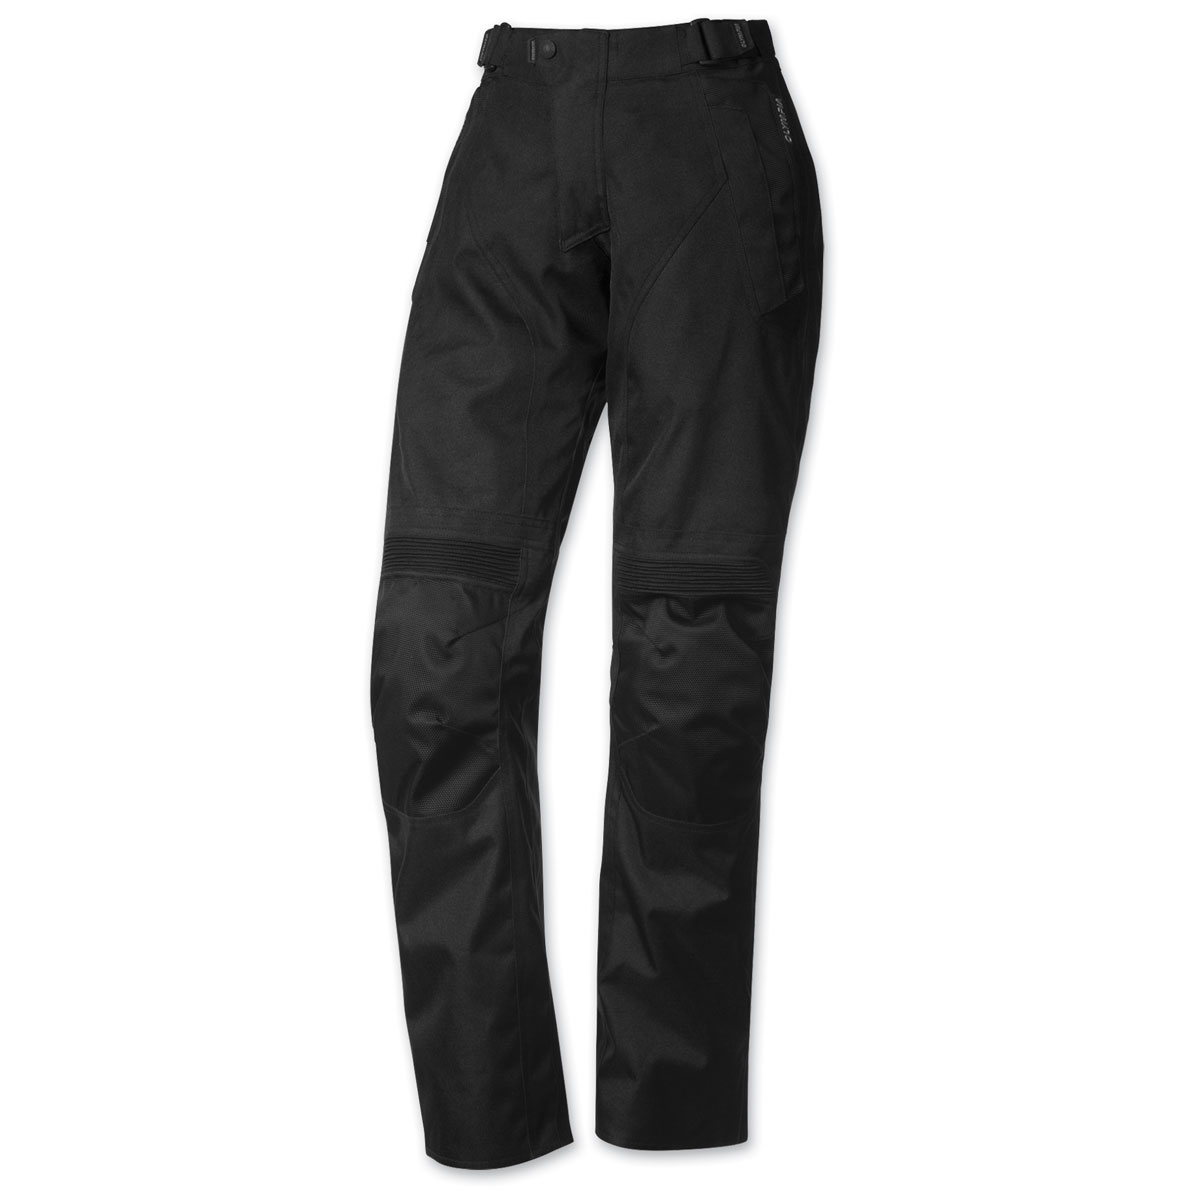 Olympia Moto Sports Women's Sentry 3 Black Pants